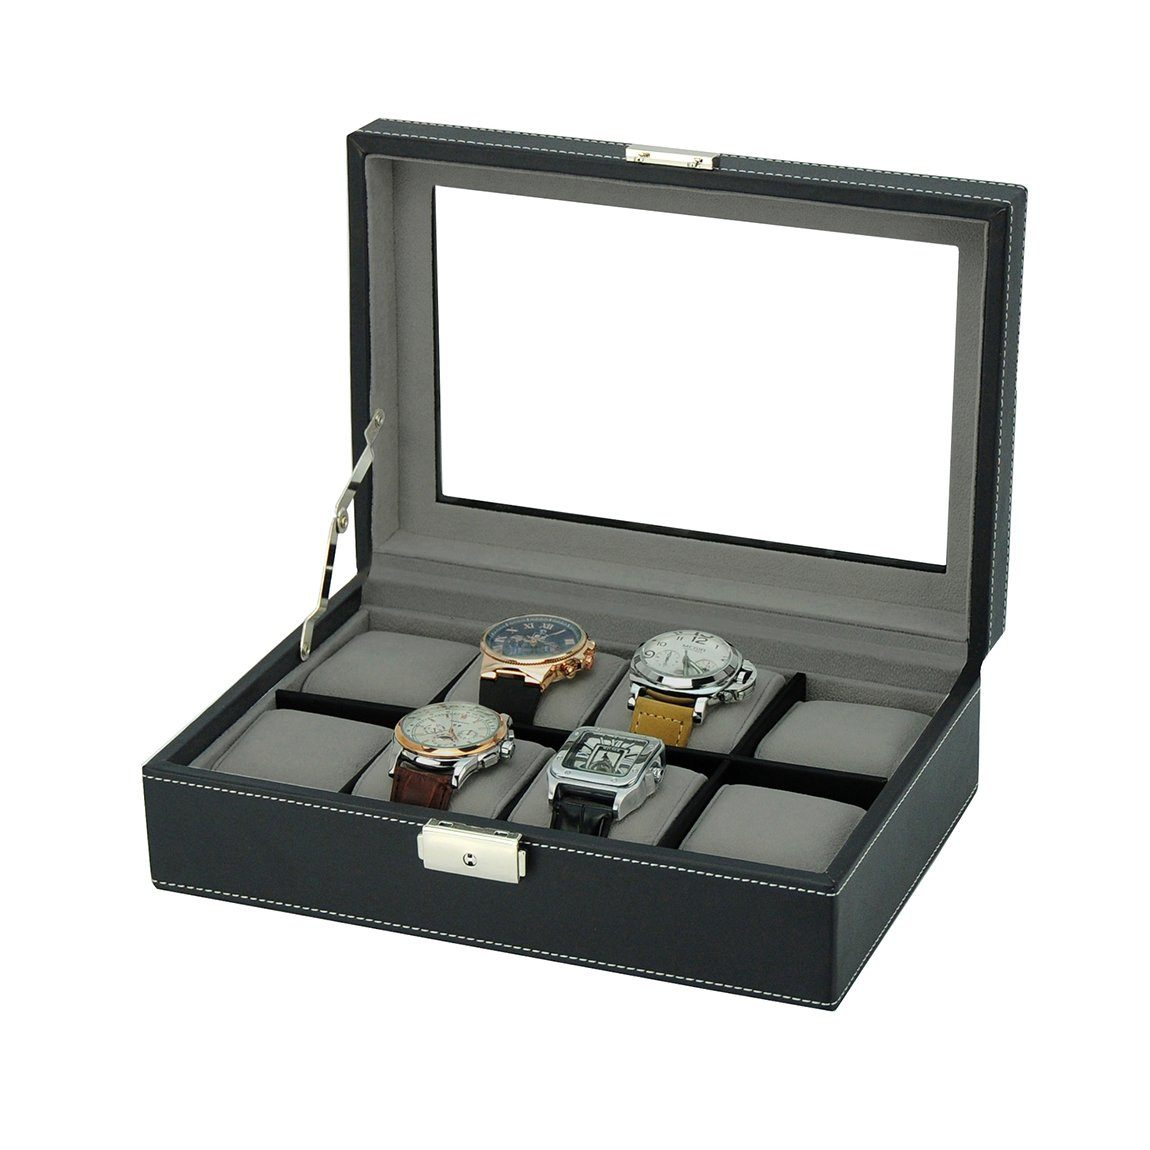 Black Leather Watch Box for 8 Watches Storage Boxes Clinks Australia Default